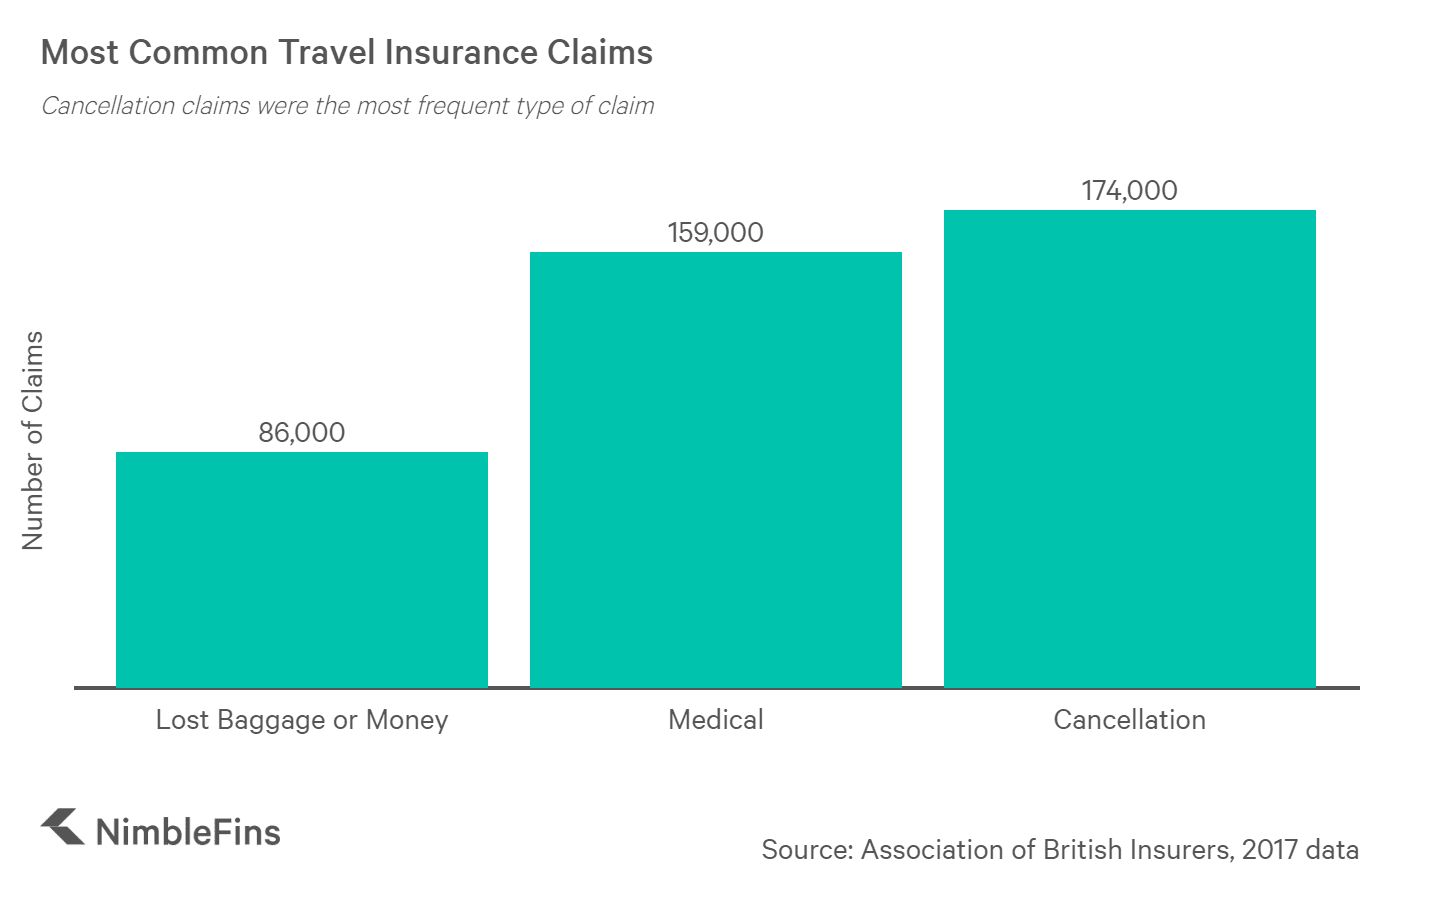 chart showing the most common types of travel insurance claims